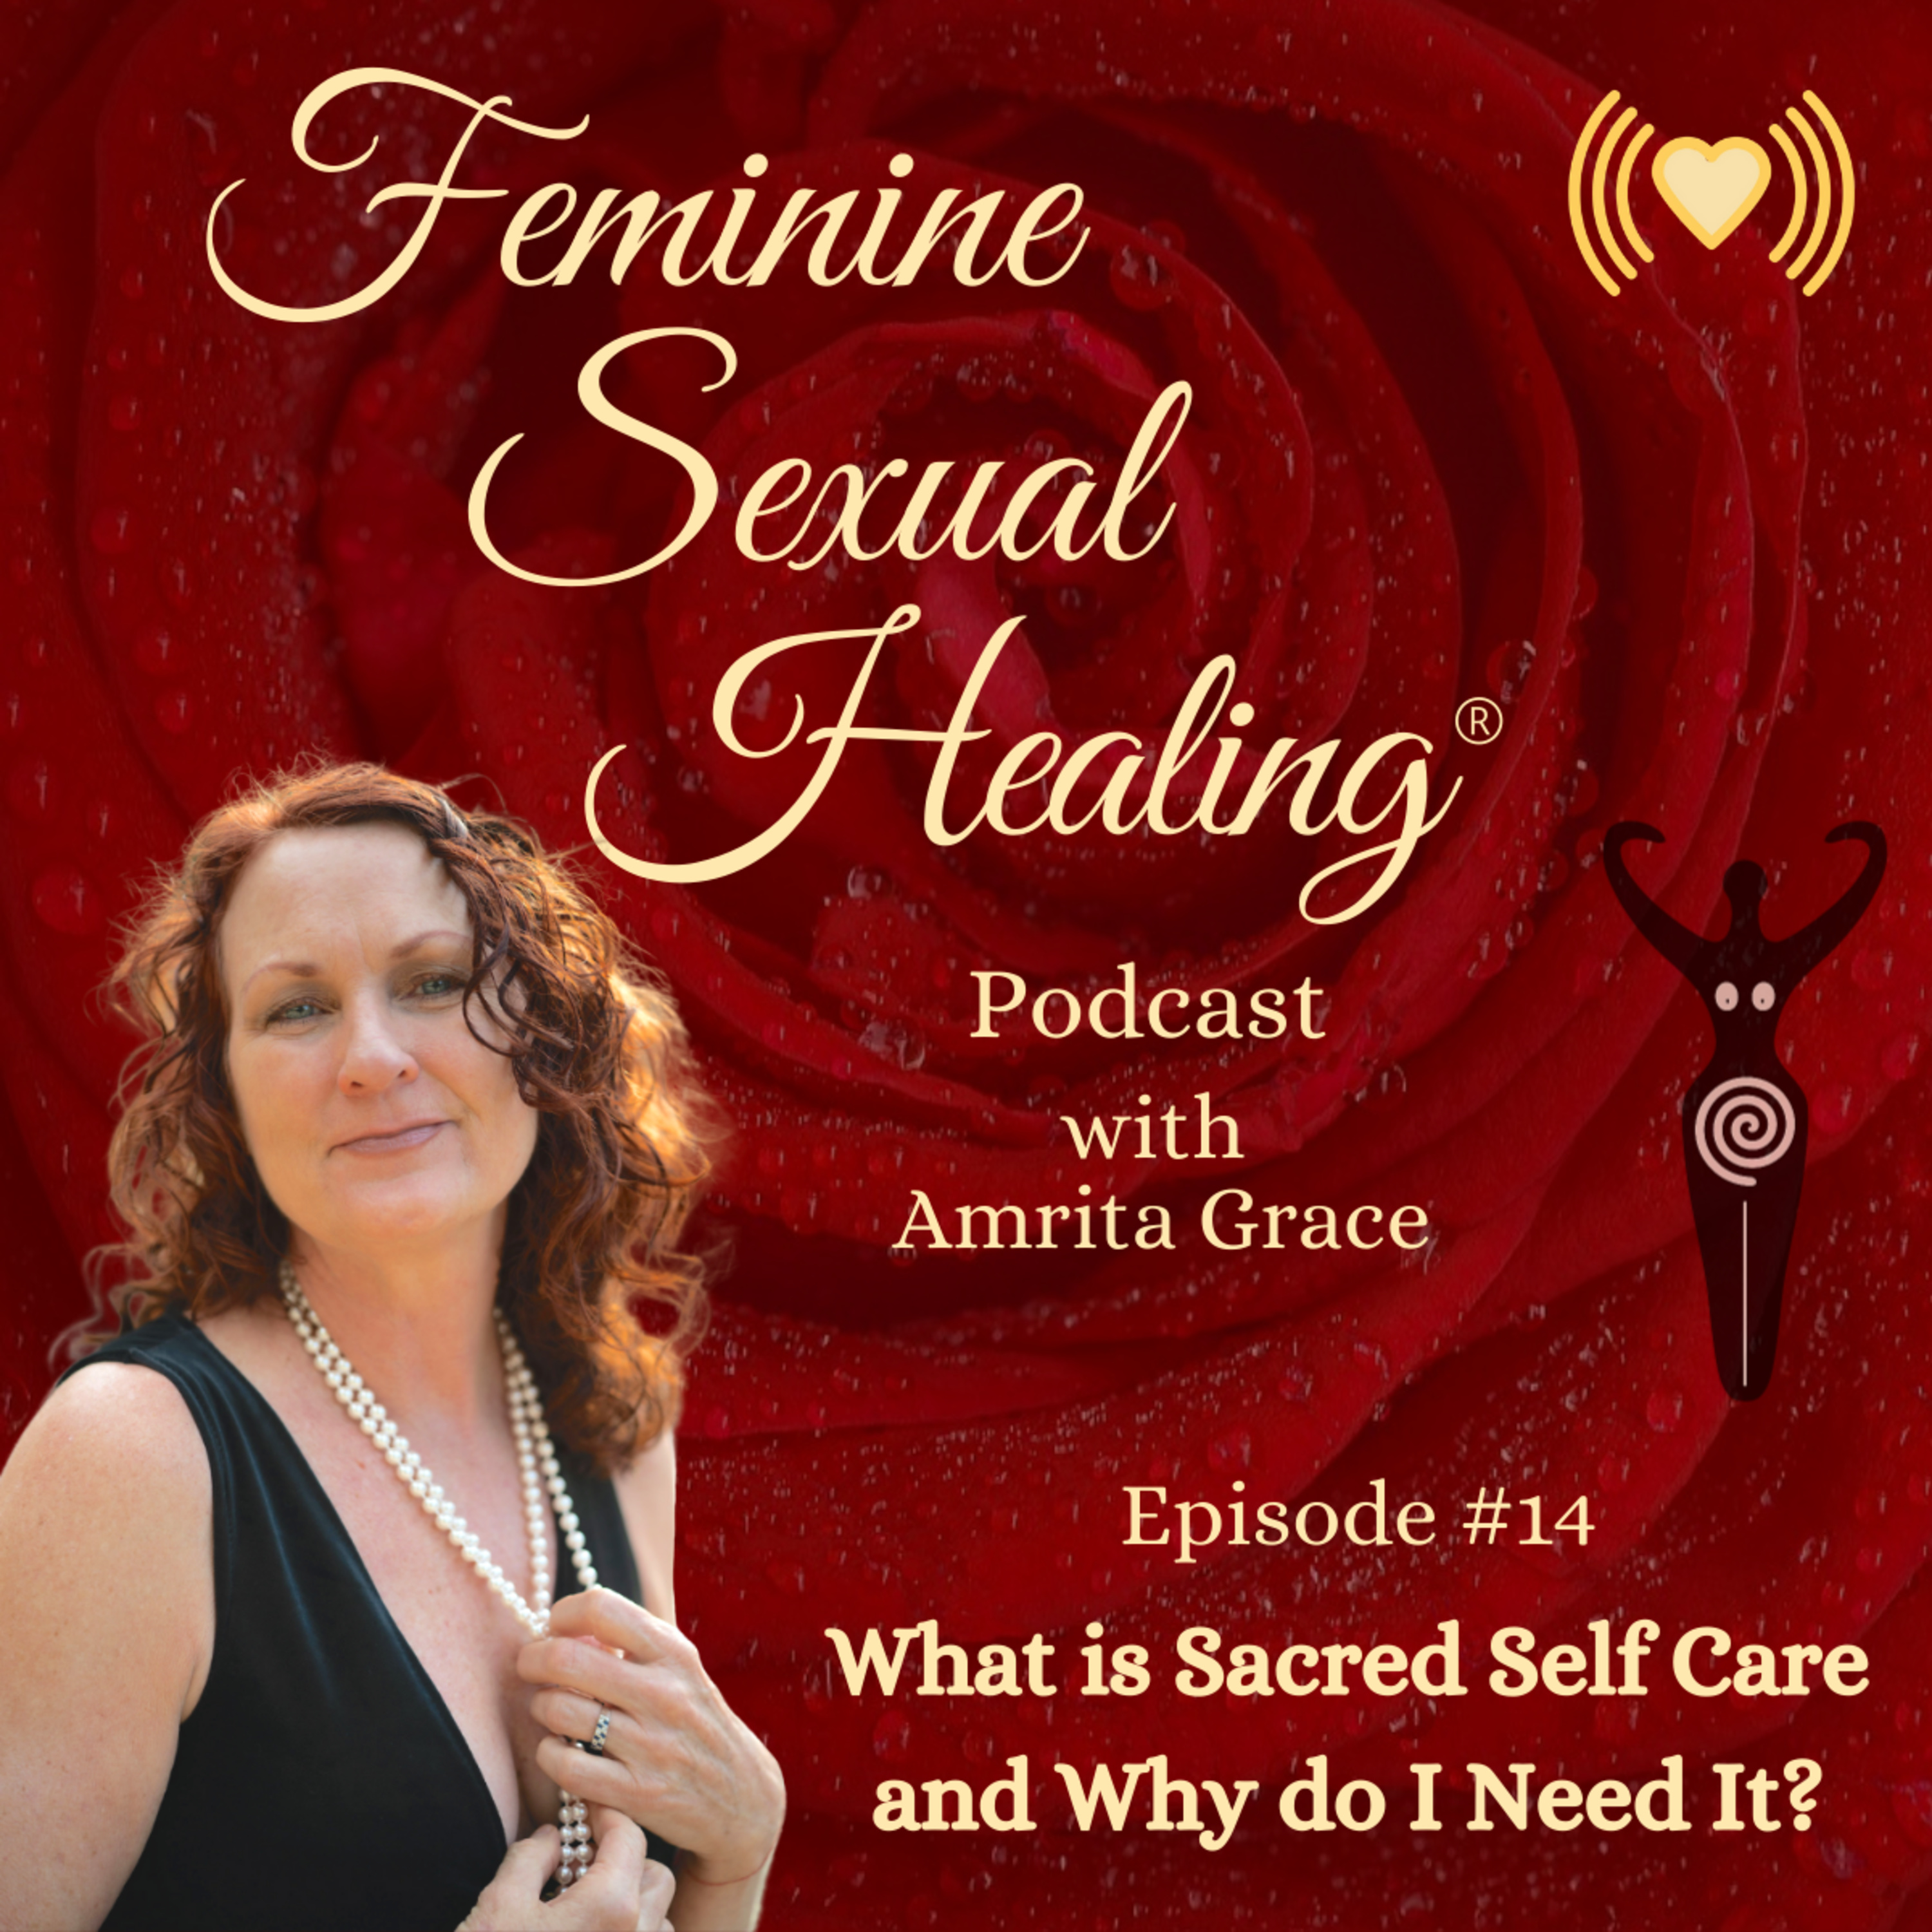 Episode #14 What is Sacred Self Care and Why do I Need It?